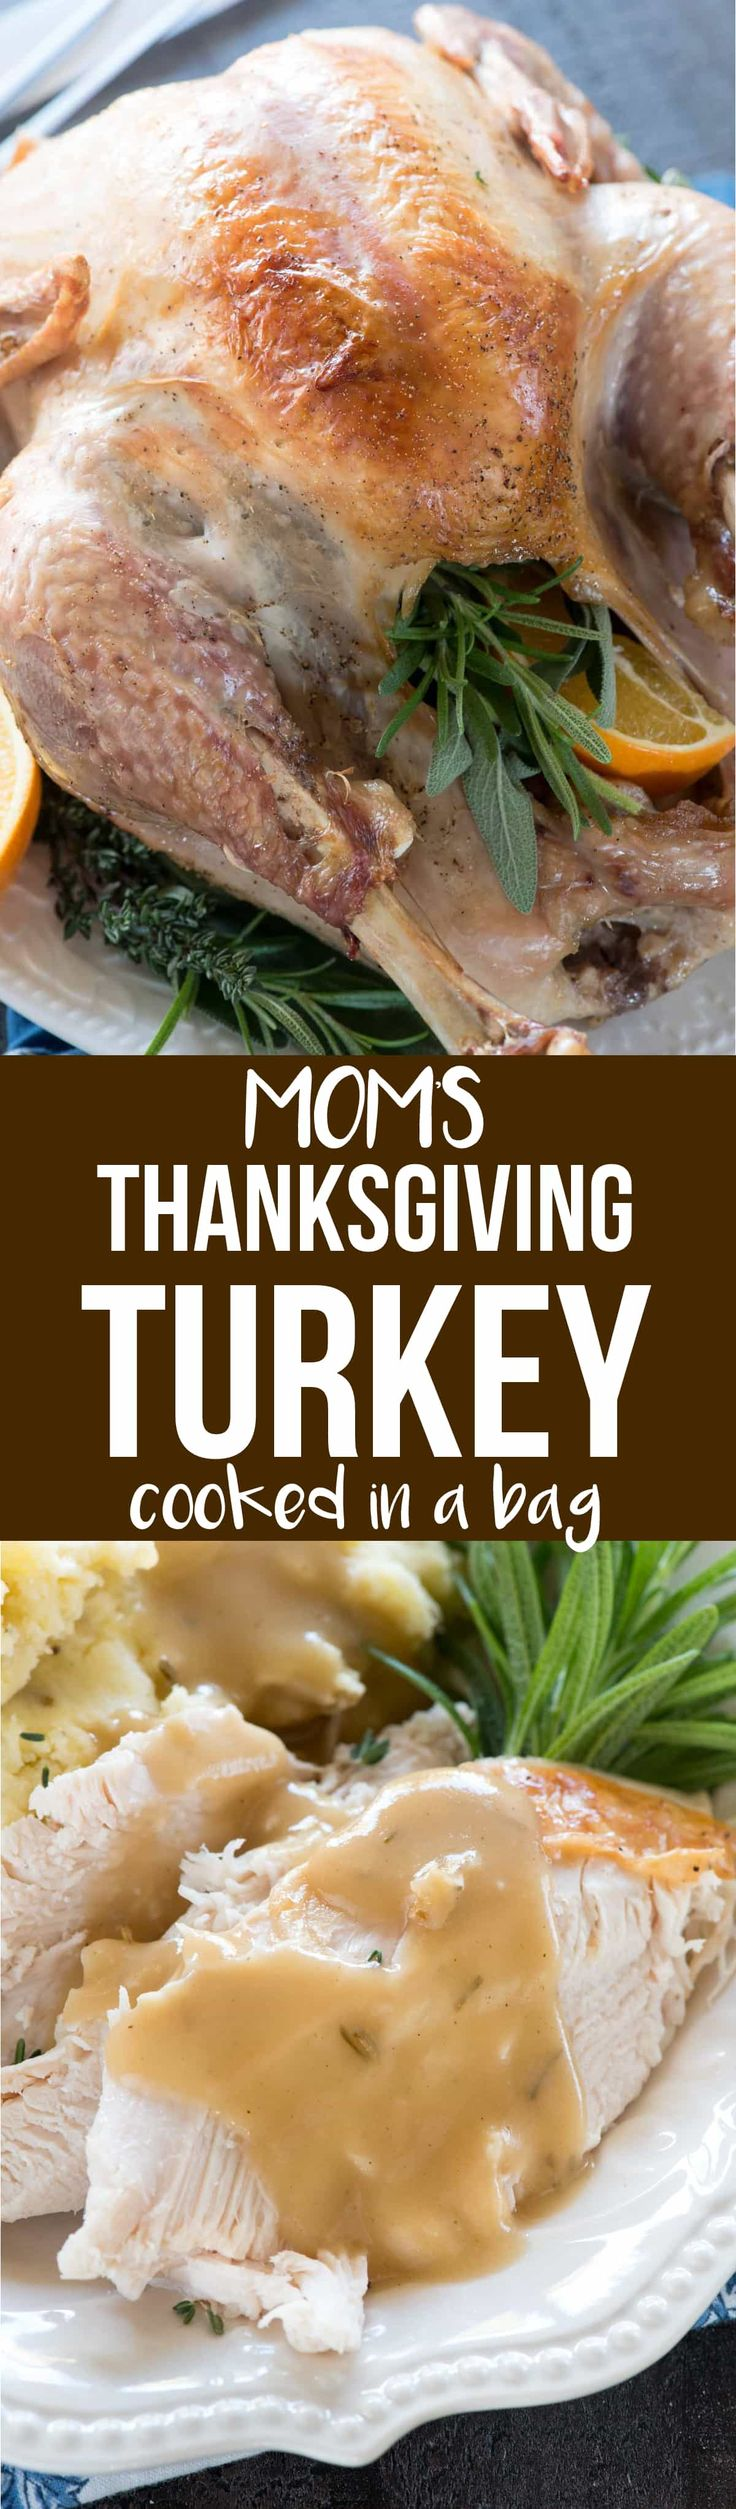 This is my Mom's Thanksgiving Turkey Recipe and it's cooked in an oven bag! It's moist every time with delicious flavor thanks to her secret baste recipe. via @crazyforcrust